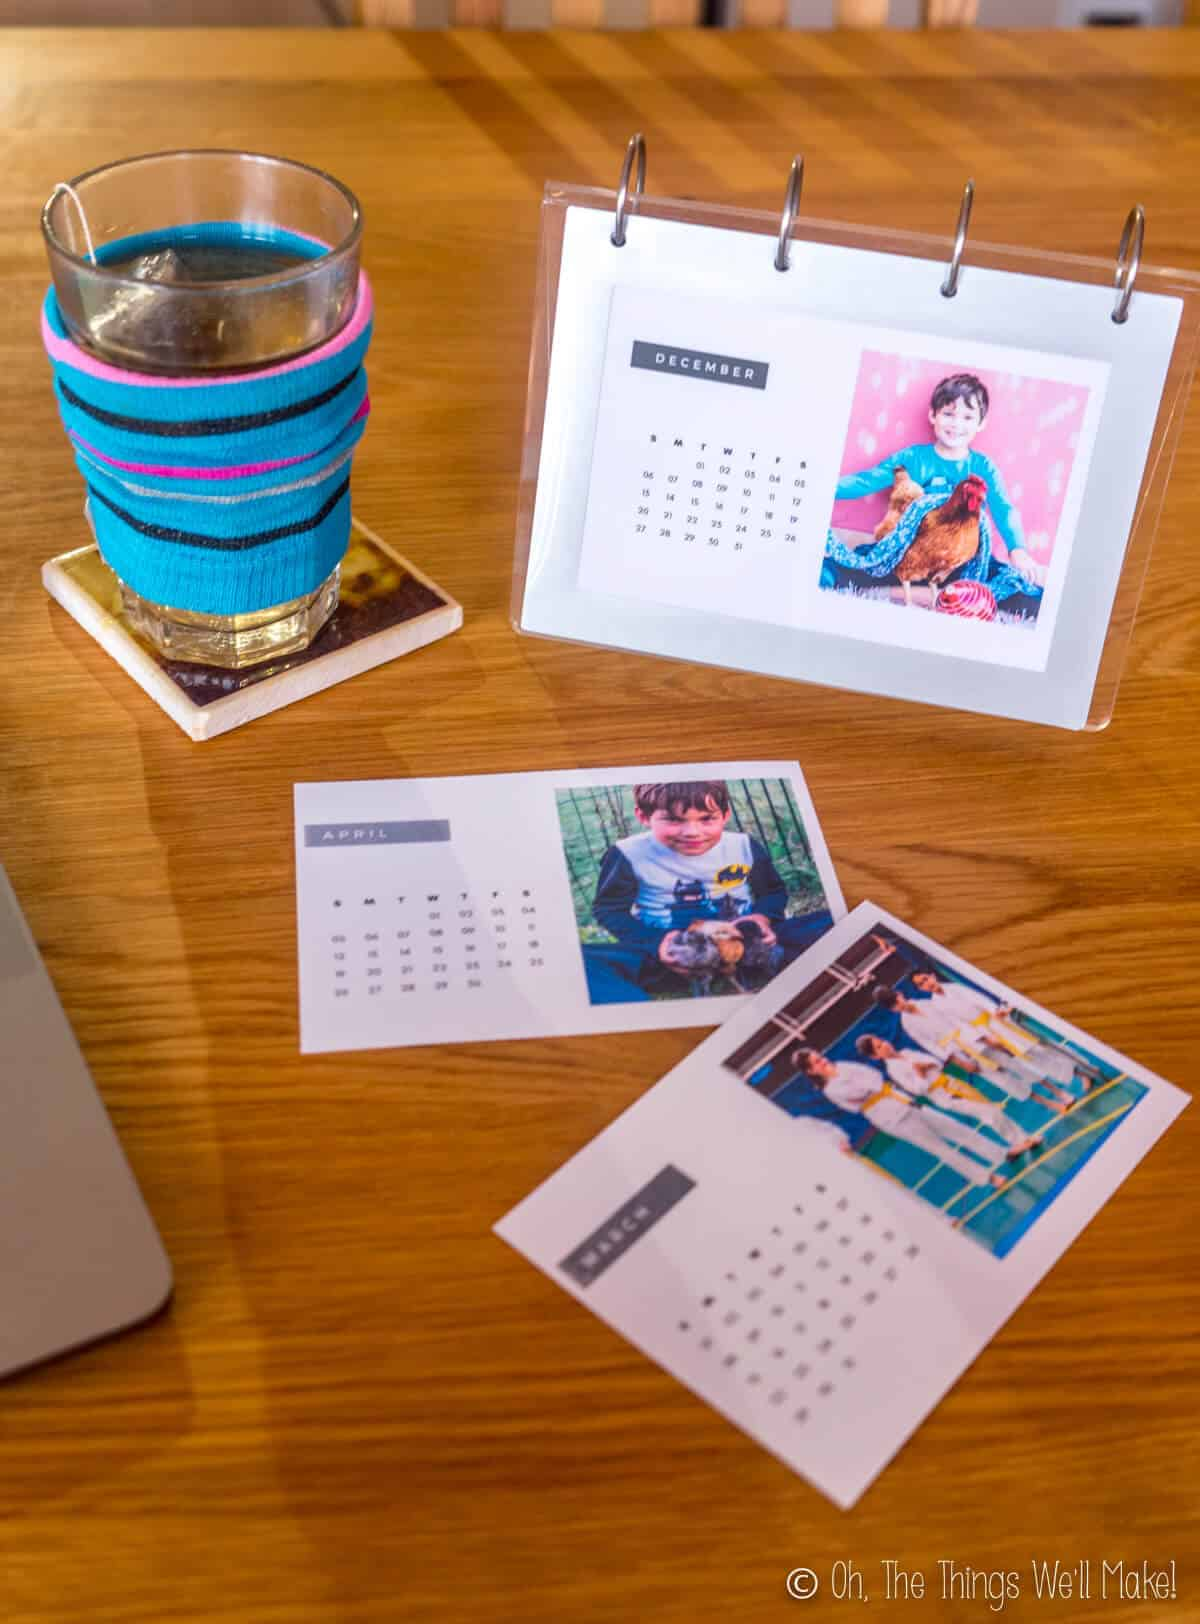 A homemade photo calendar in a flip frame next to a computer and a glass full of tea and some extra printed out photo calendars.